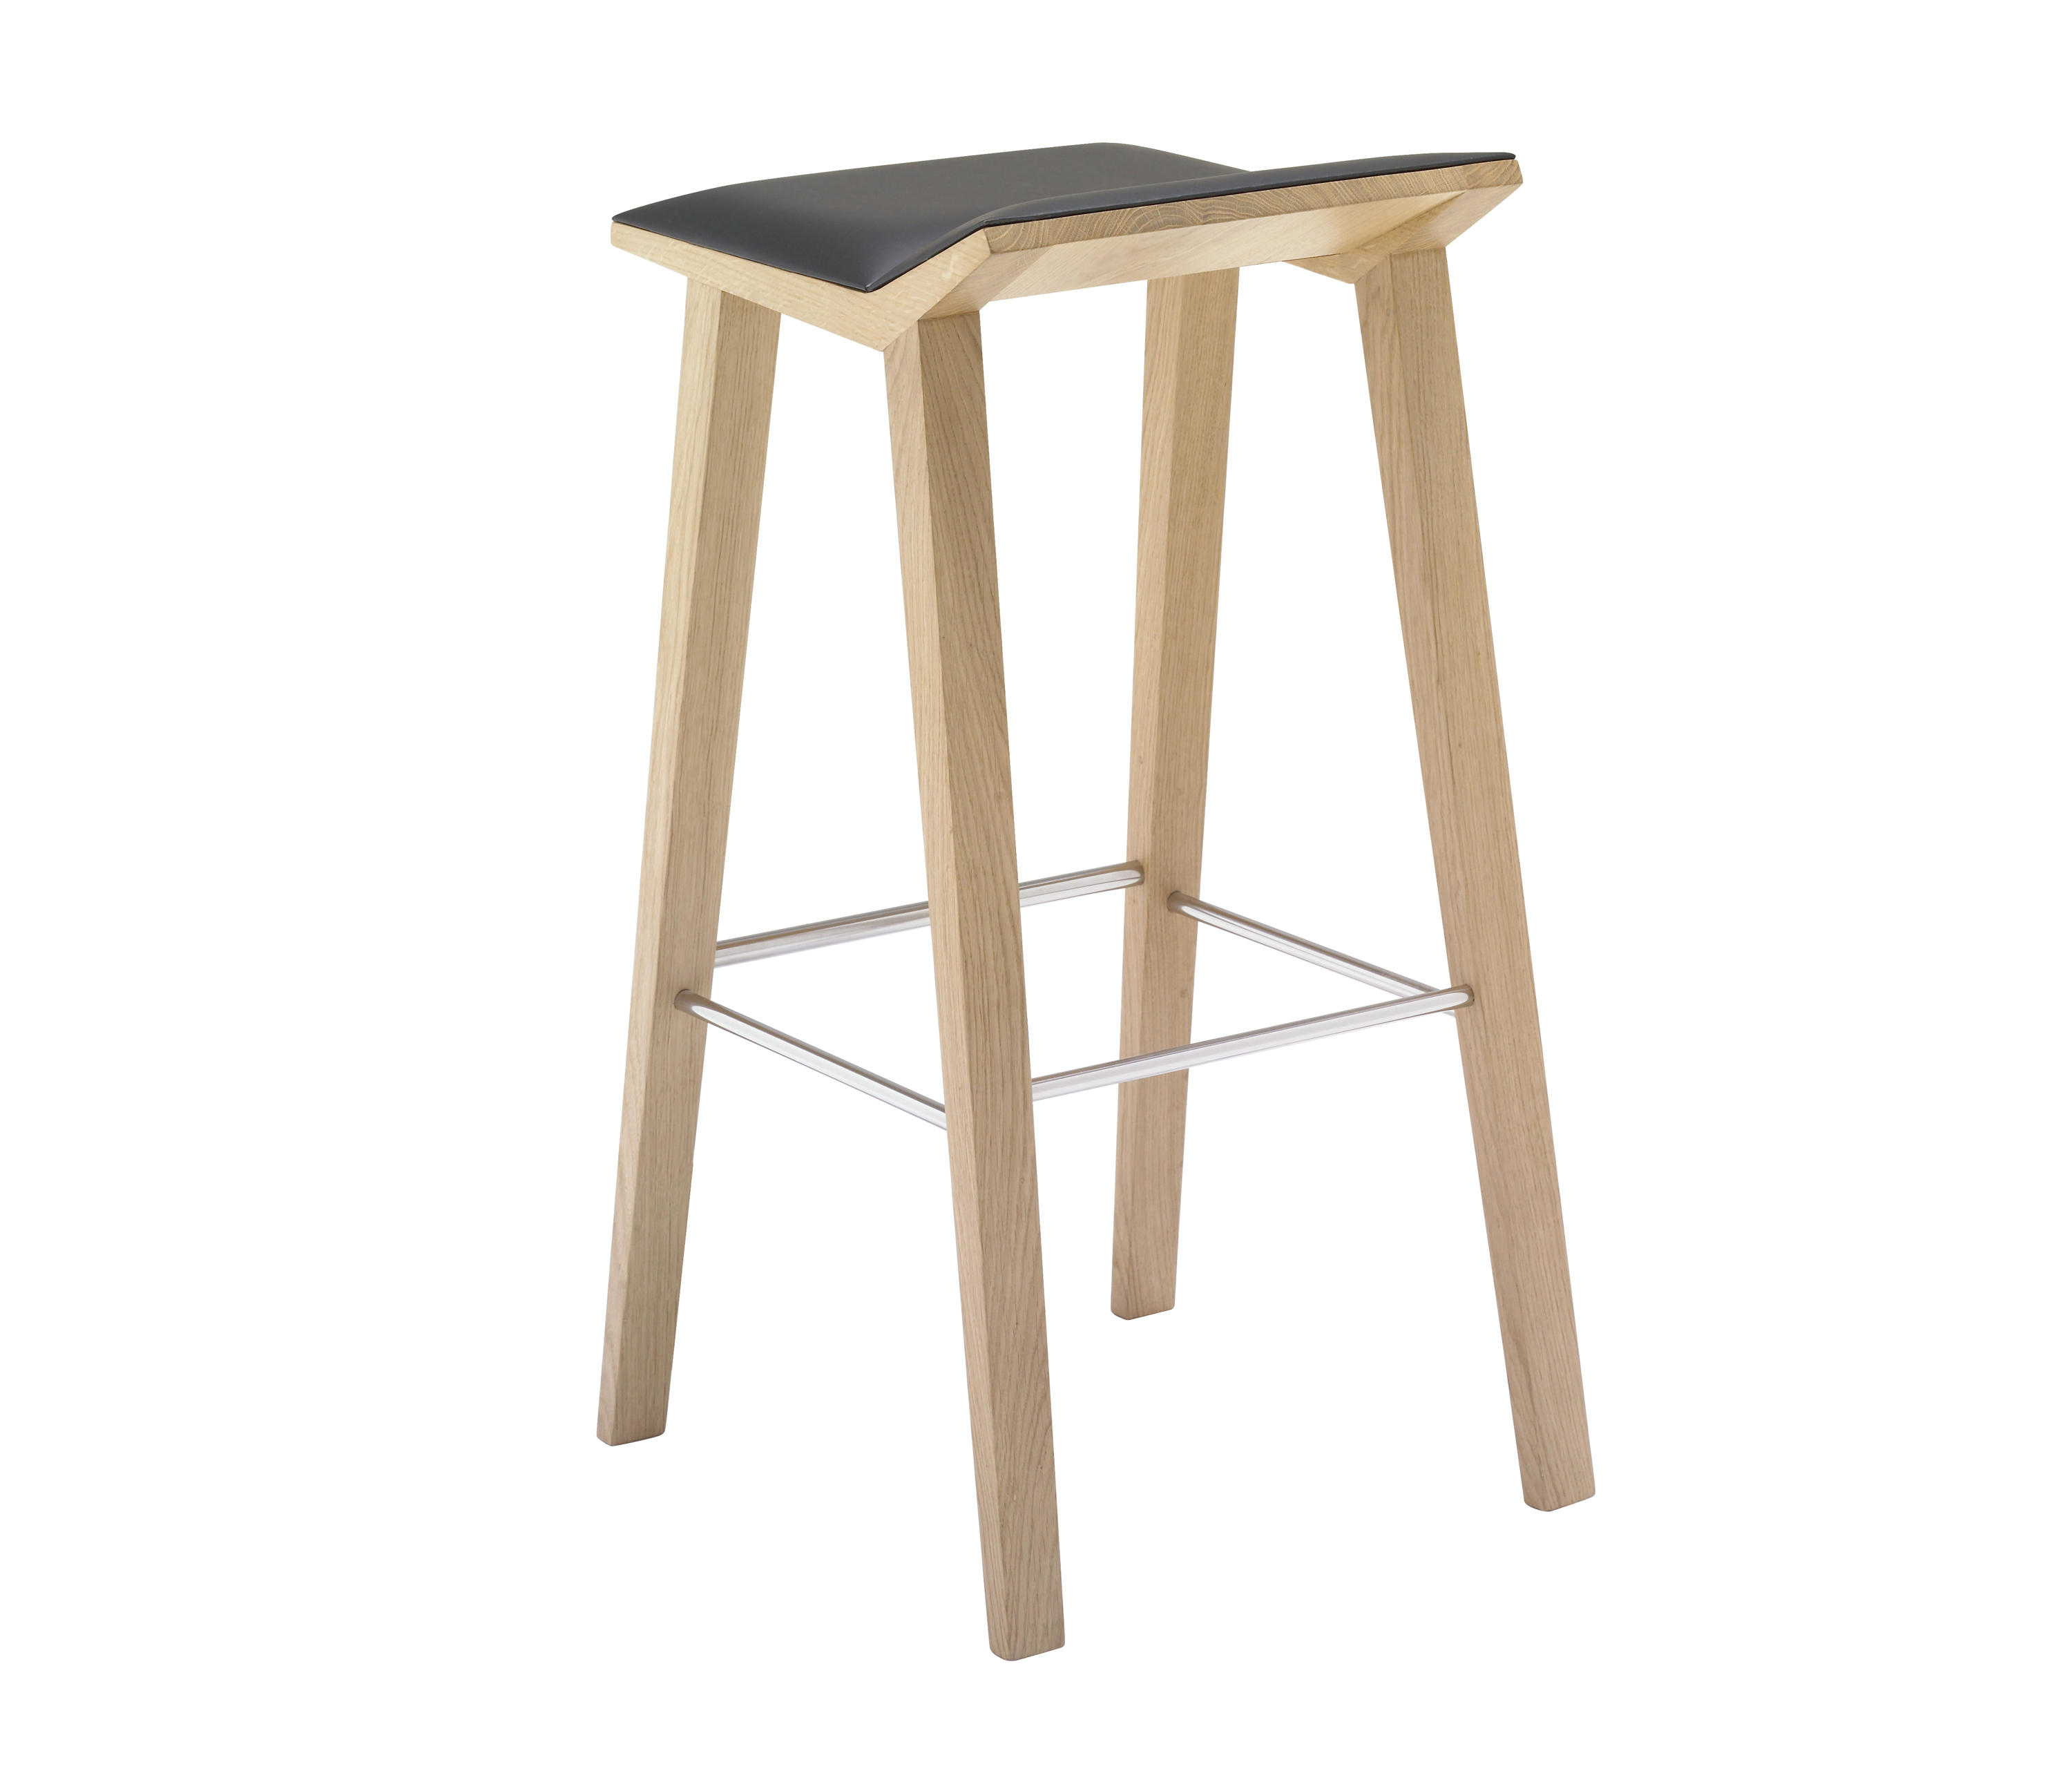 Wondrous Moody Bq 1261 Bar Stools From Andreu World Architonic Evergreenethics Interior Chair Design Evergreenethicsorg